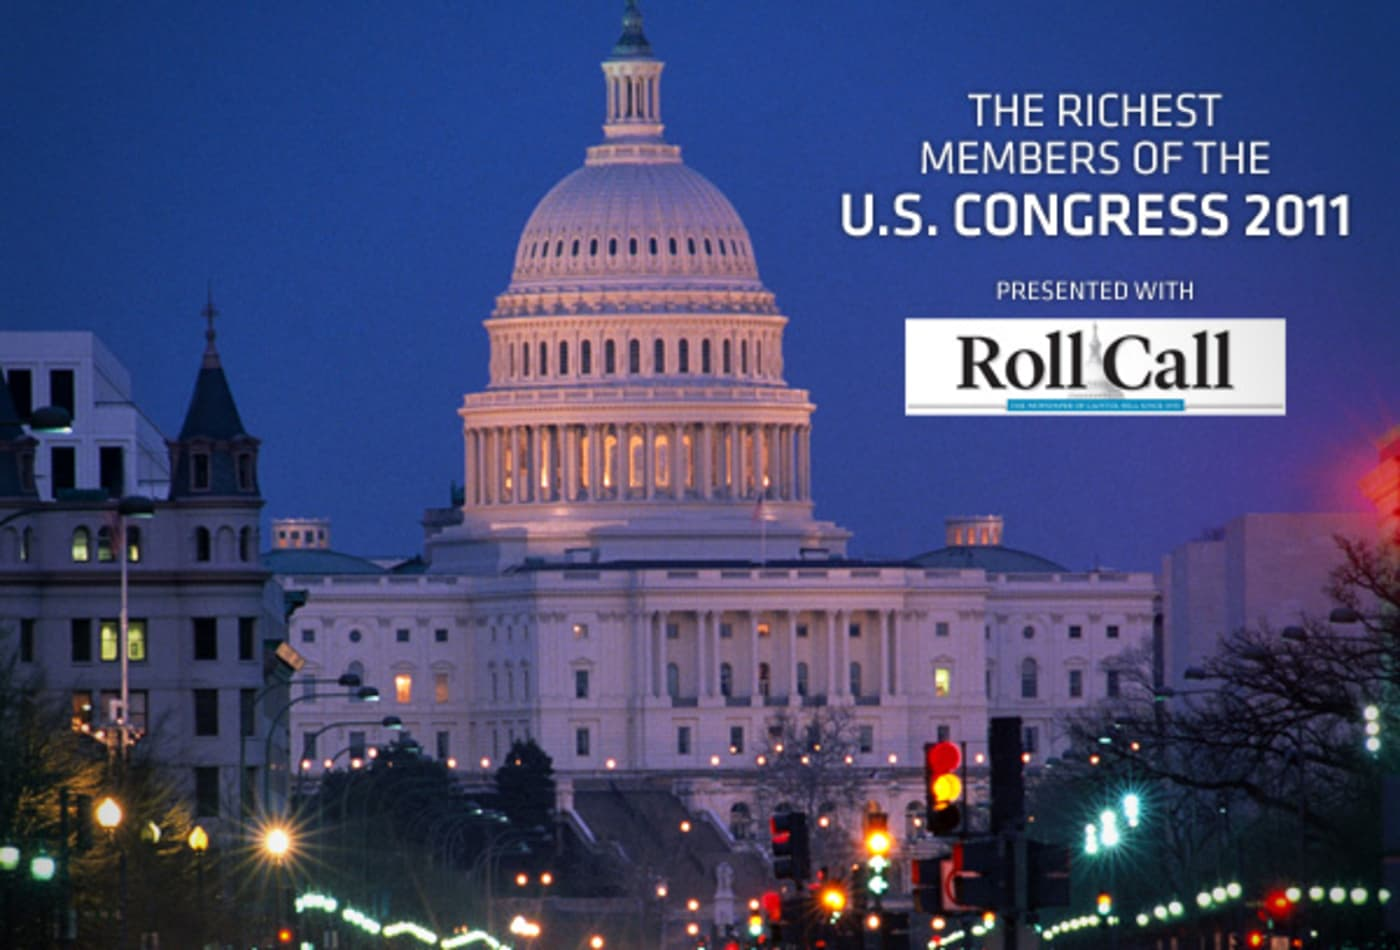 SS_richest_members_congress_2011_cover.jpg